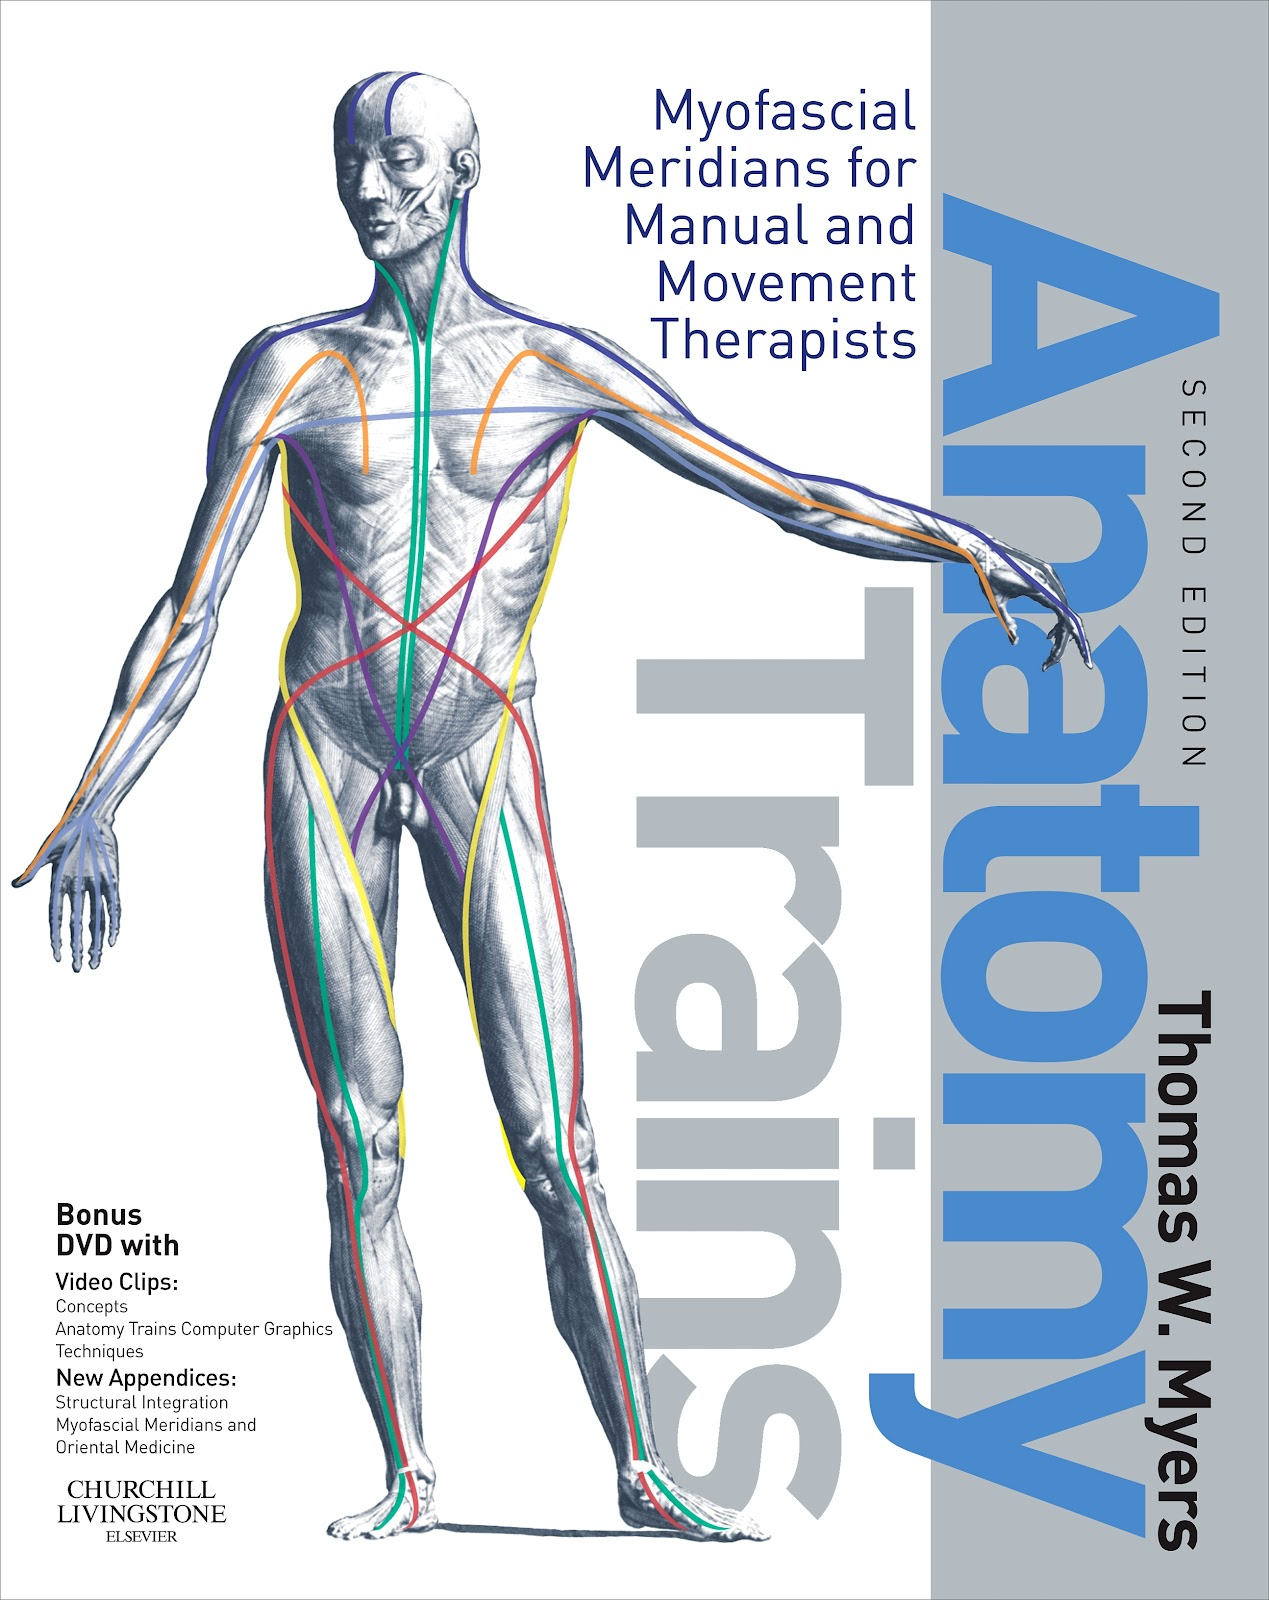 2012 Art Of Motion Training In Movement Publication Anatomy Trains